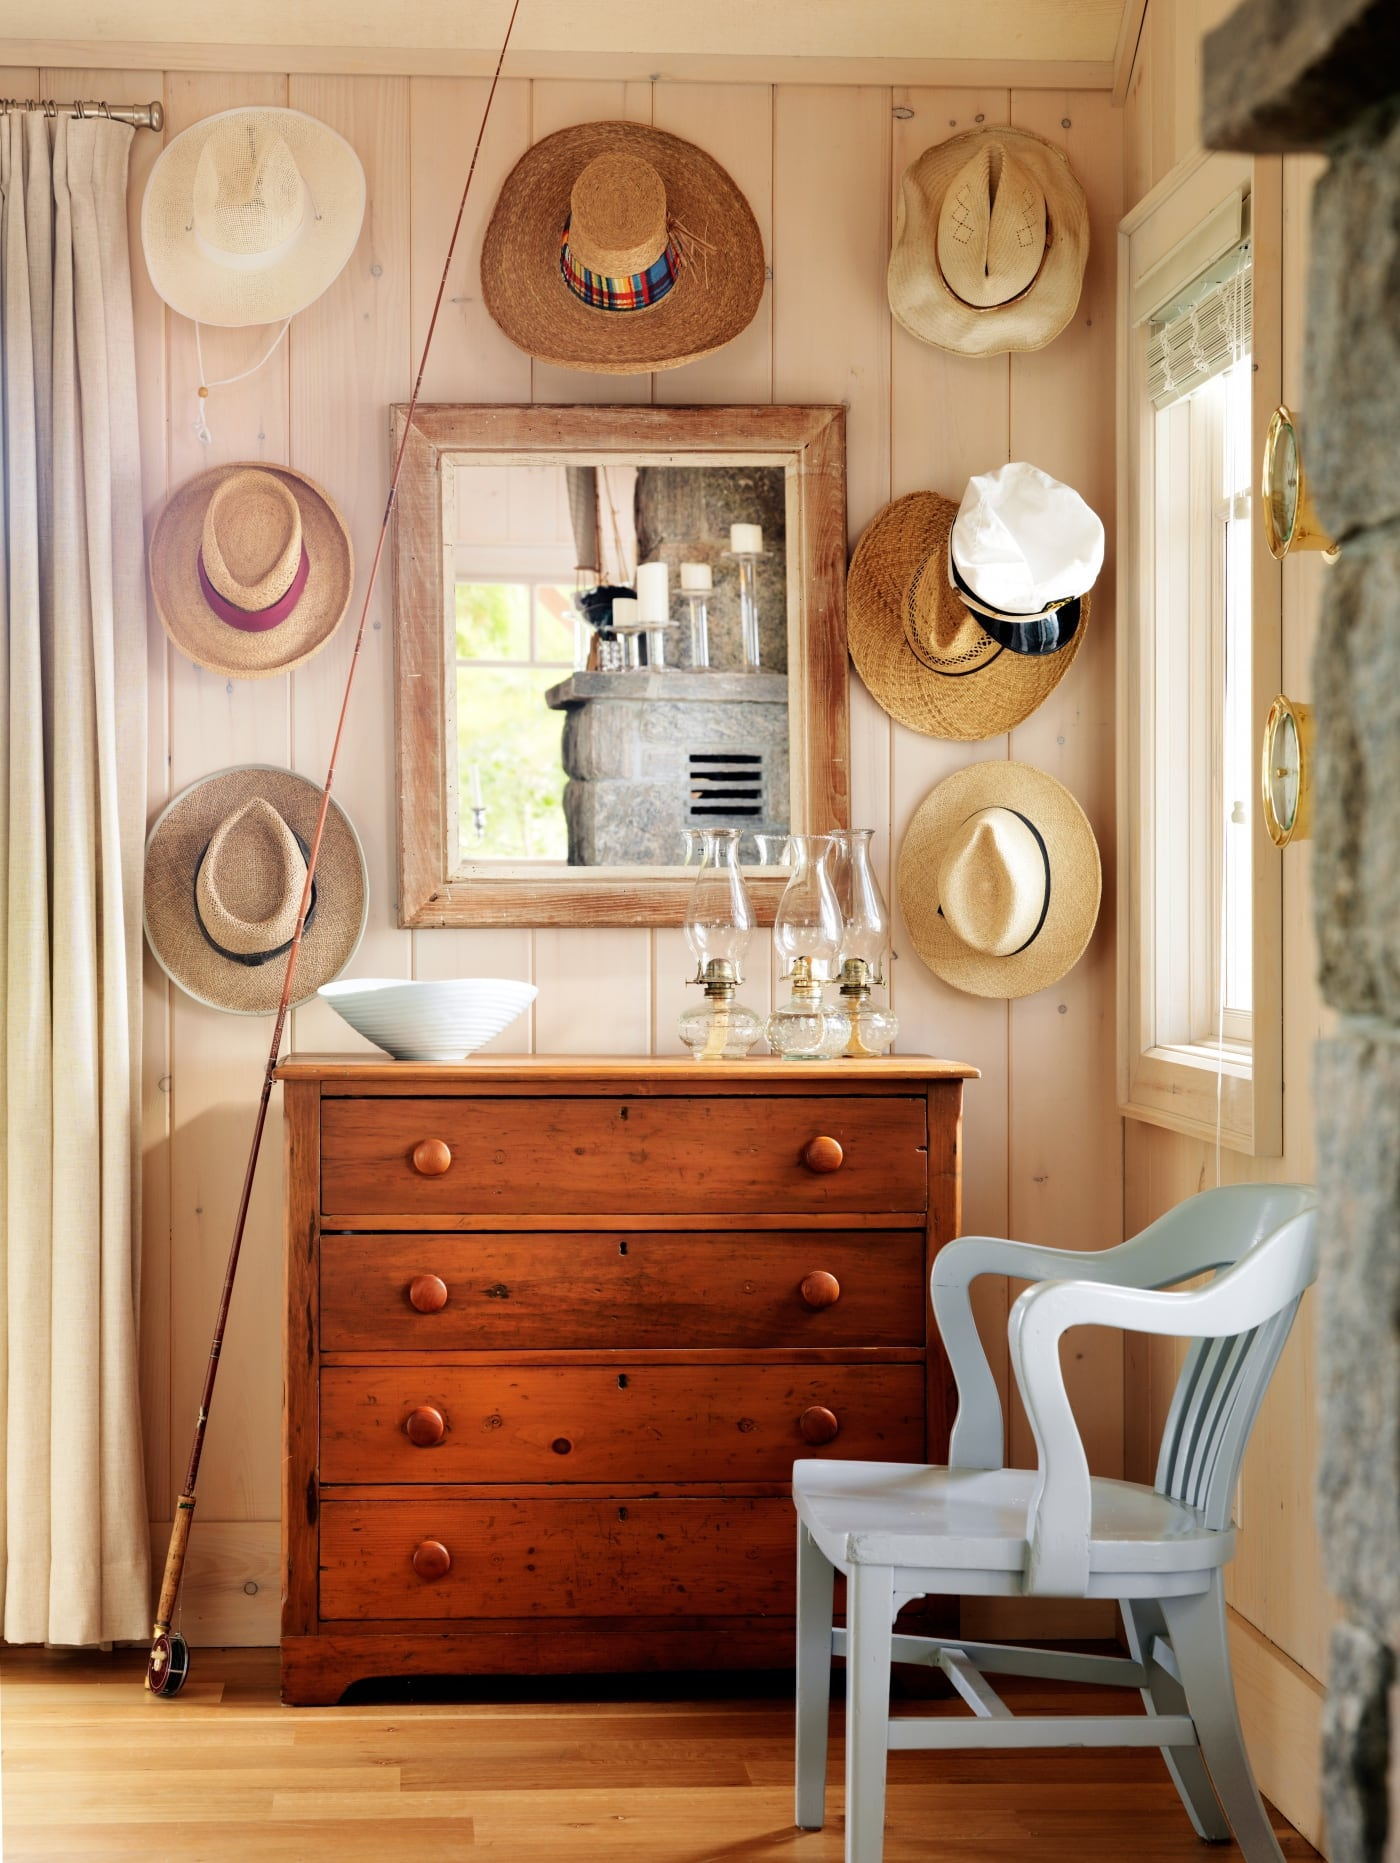 Storage unit placed by the front door and hats hung on wood paneled wall. #SarahRichardson #cottagestyle